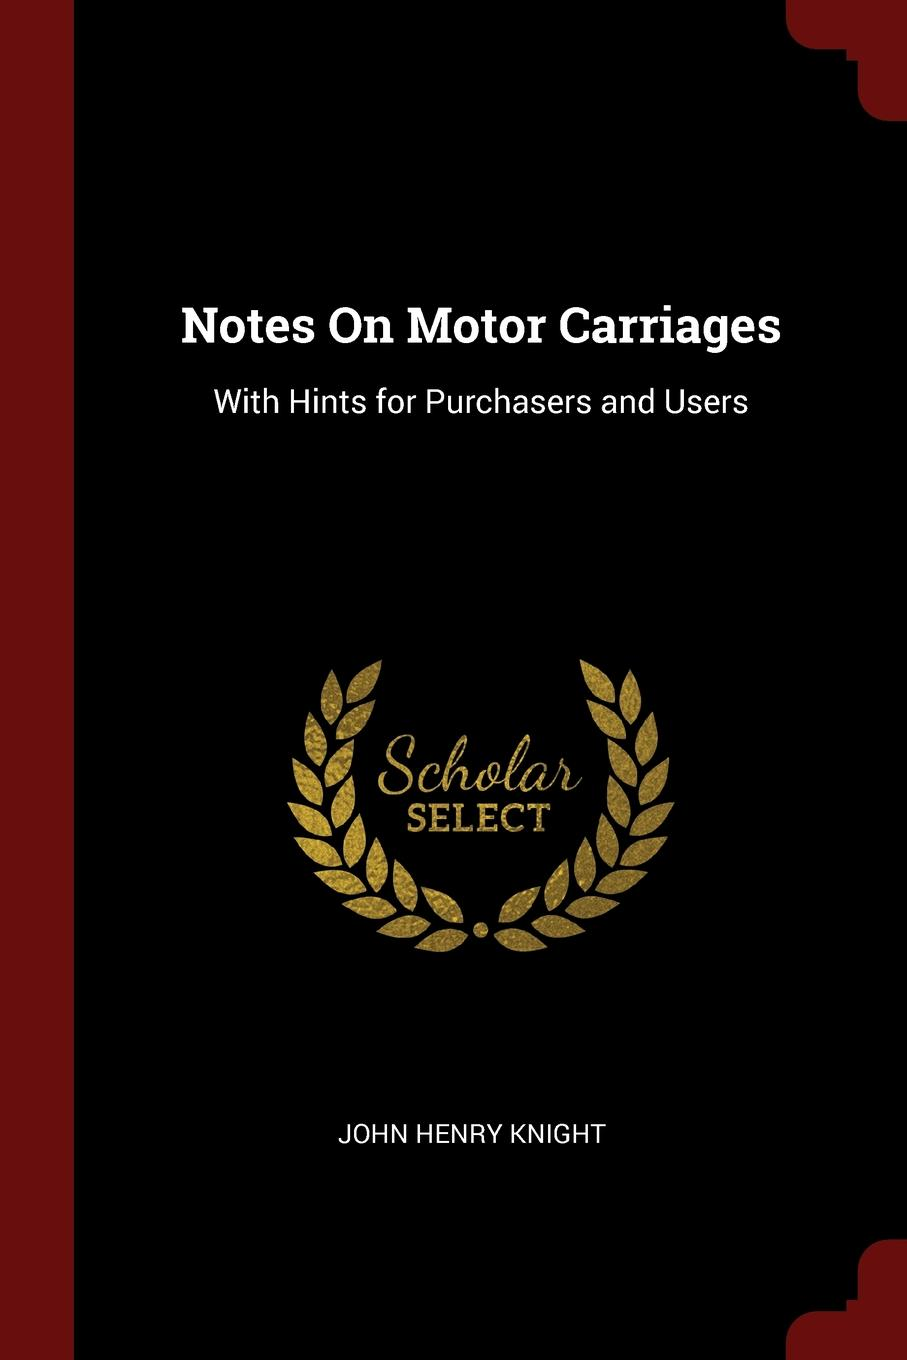 John Henry Knight Notes On Motor Carriages. With Hints for Purchasers and Users